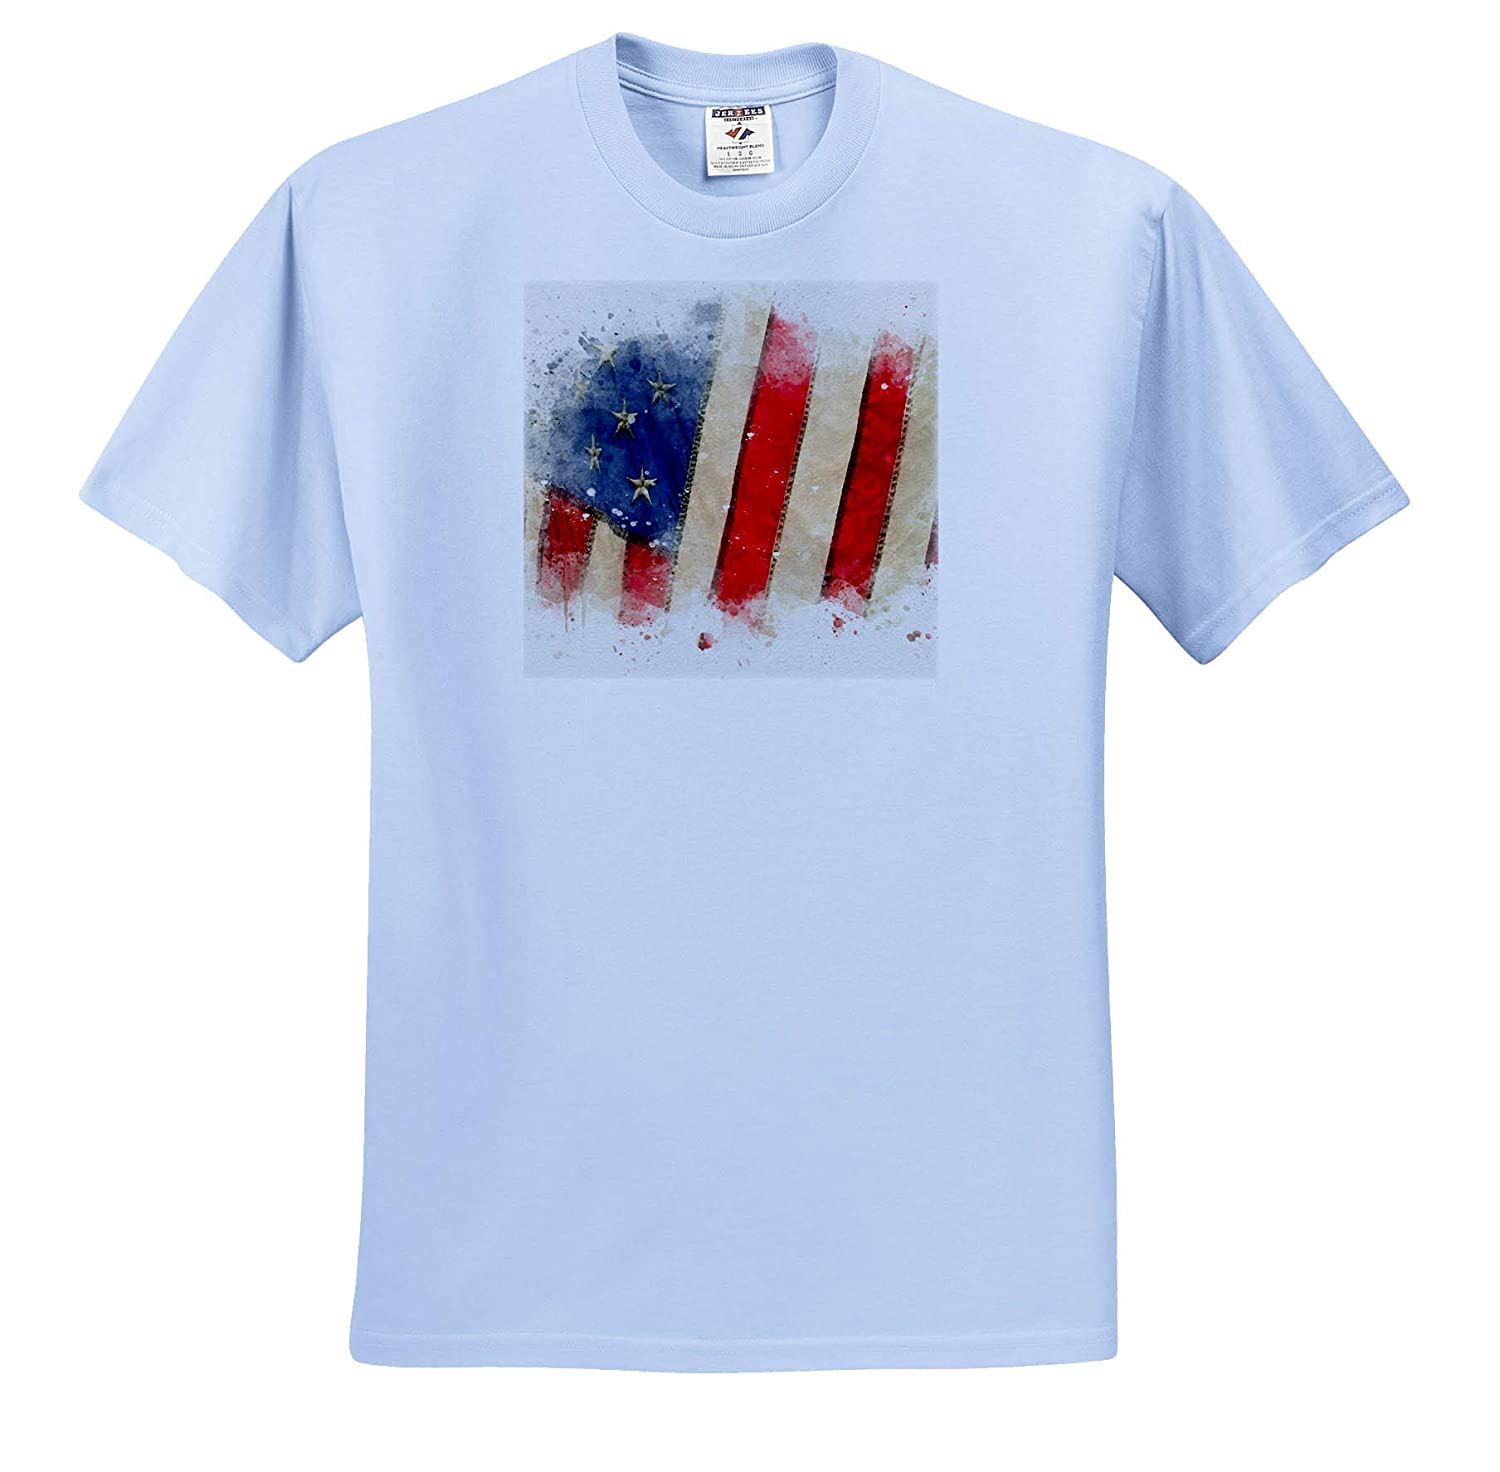 Image of Watercolor USA Flag Art ts/_318693 Adult T-Shirt XL 3dRose Anne Marie Baugh Impressionist Mixed Media Art